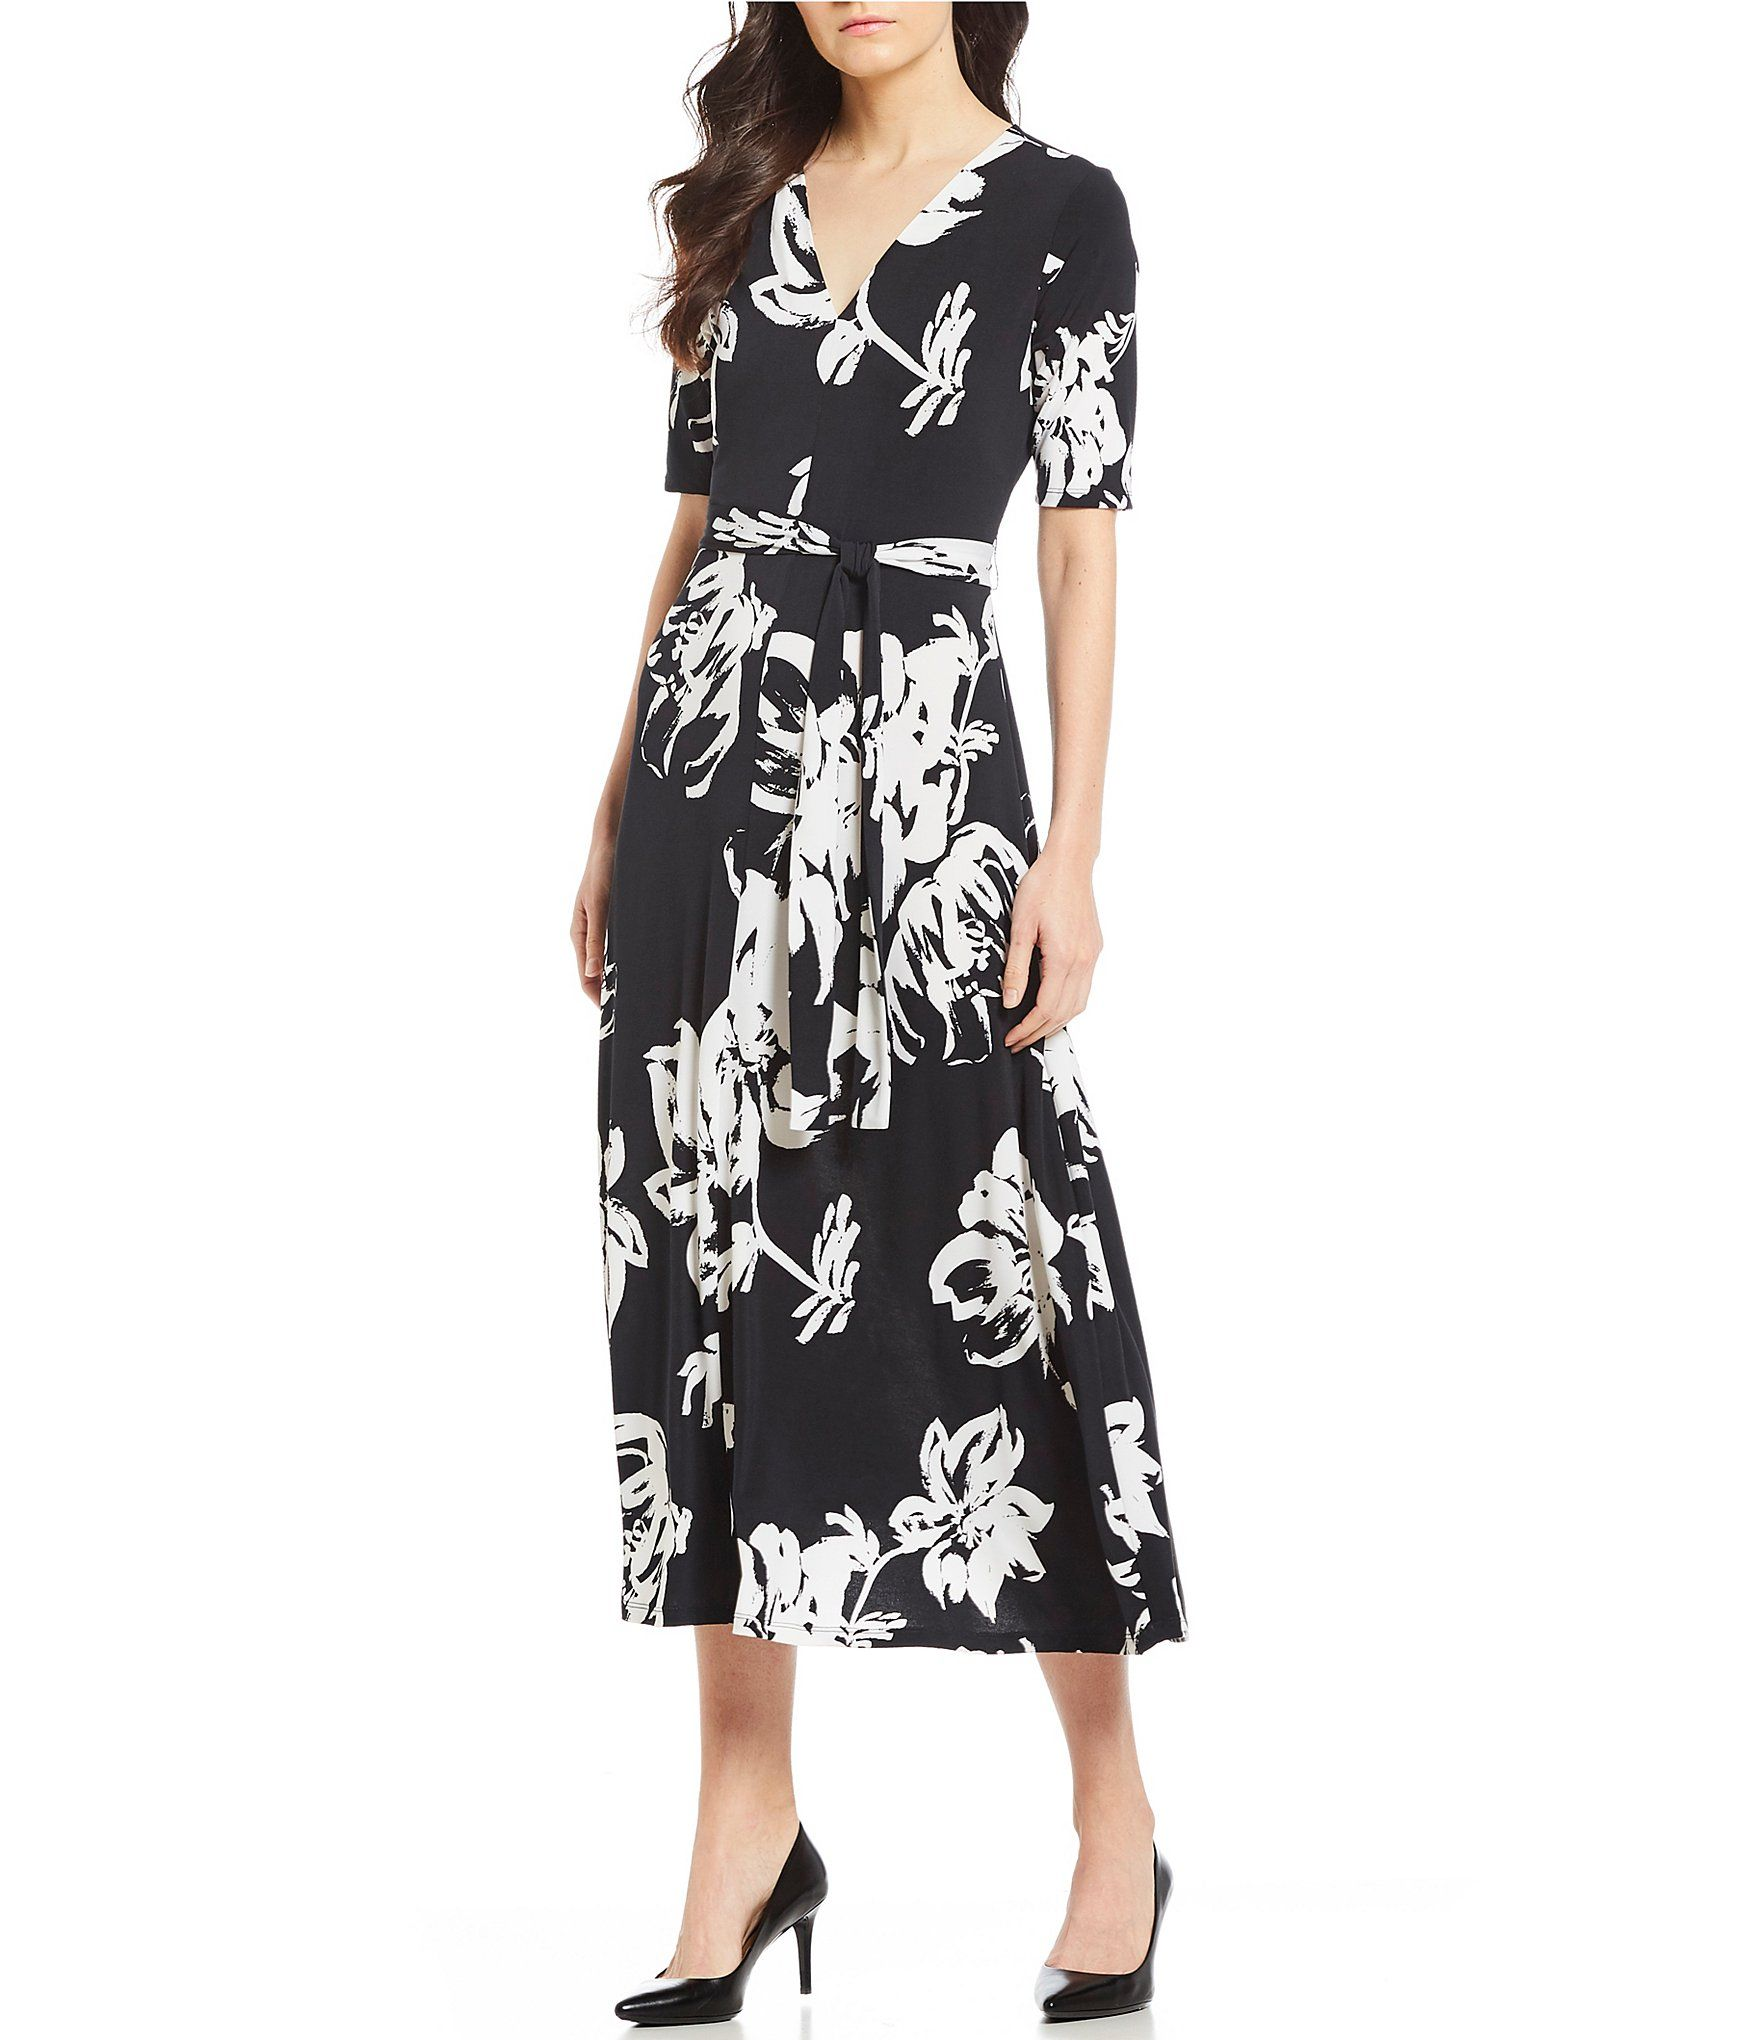 ad0be27cdd9 Preston   York Sydney Floral Print Belted Knit Midi Dress  Dillards ...